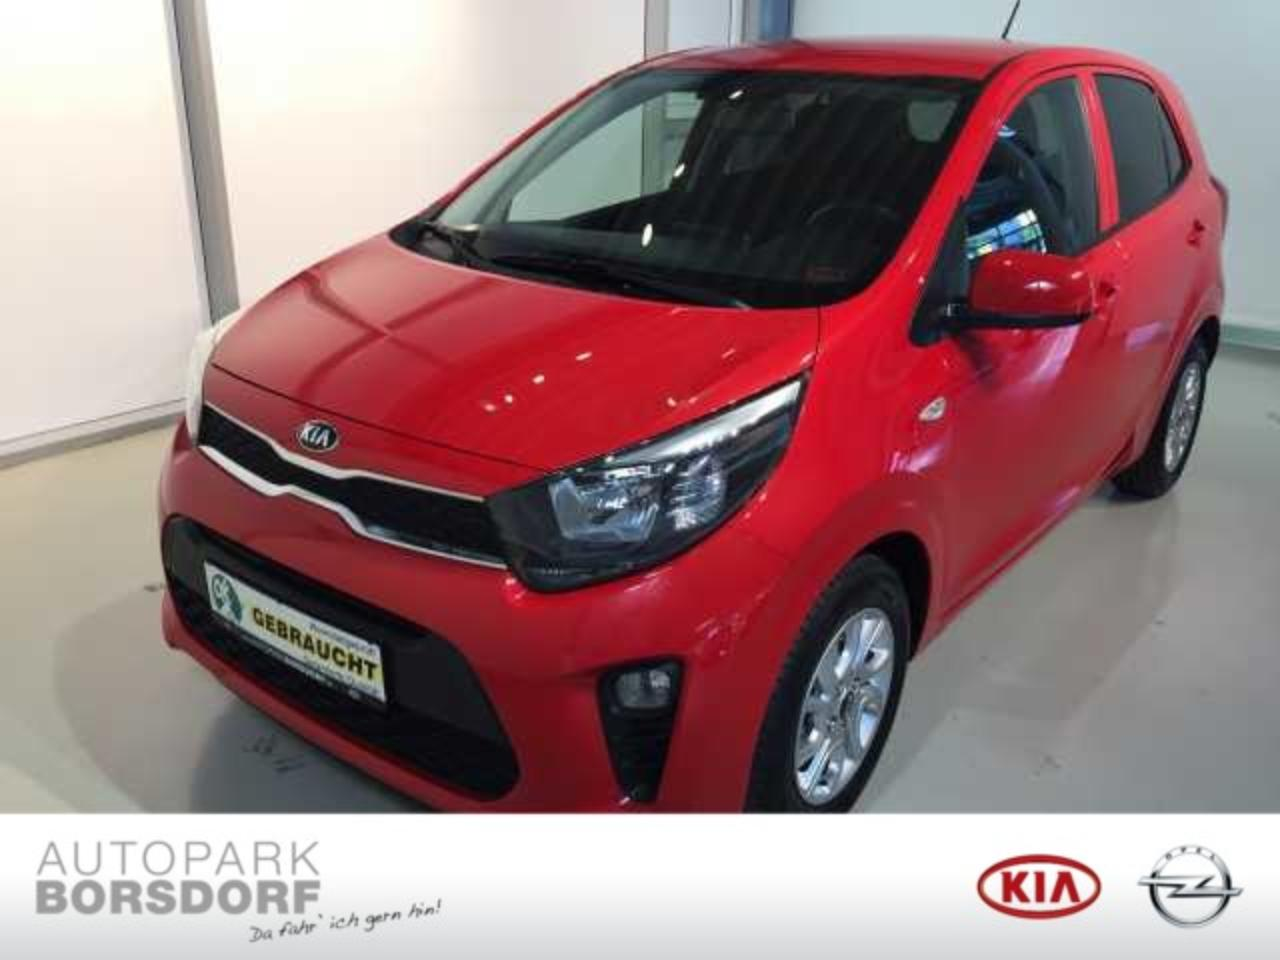 Kia Picanto Picanto 1.0 Dream Team ISG (EURO 6d-TEMP)